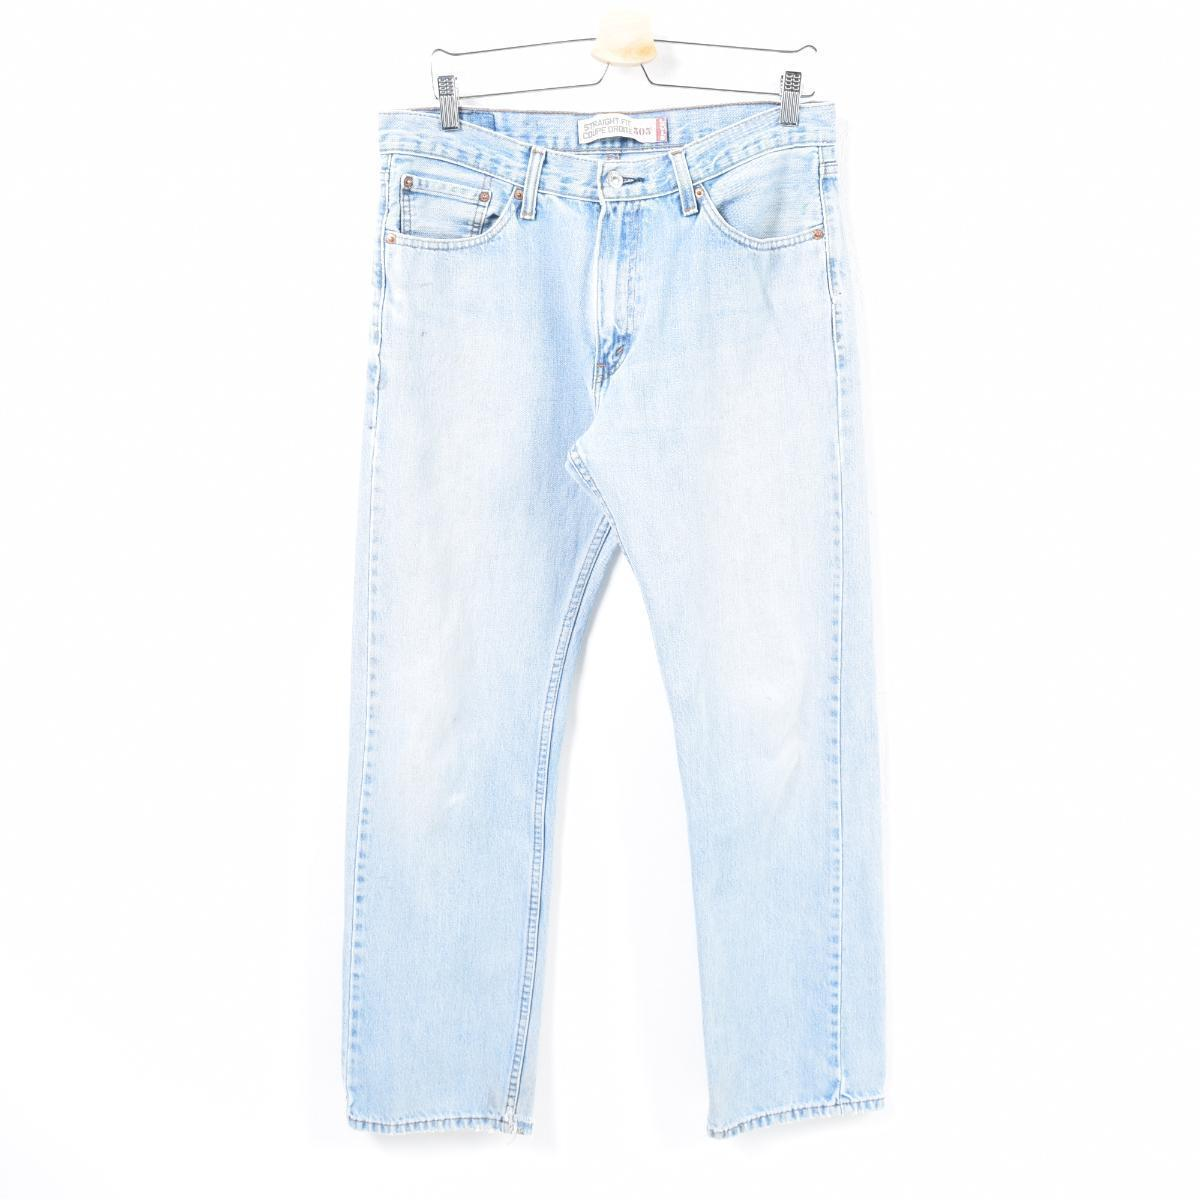 Jeans Coupe Droite Levis Levi S 505 Straight Fit Coupe Droite Tapered Jeans Denim Underwear Men W35 Wan4995